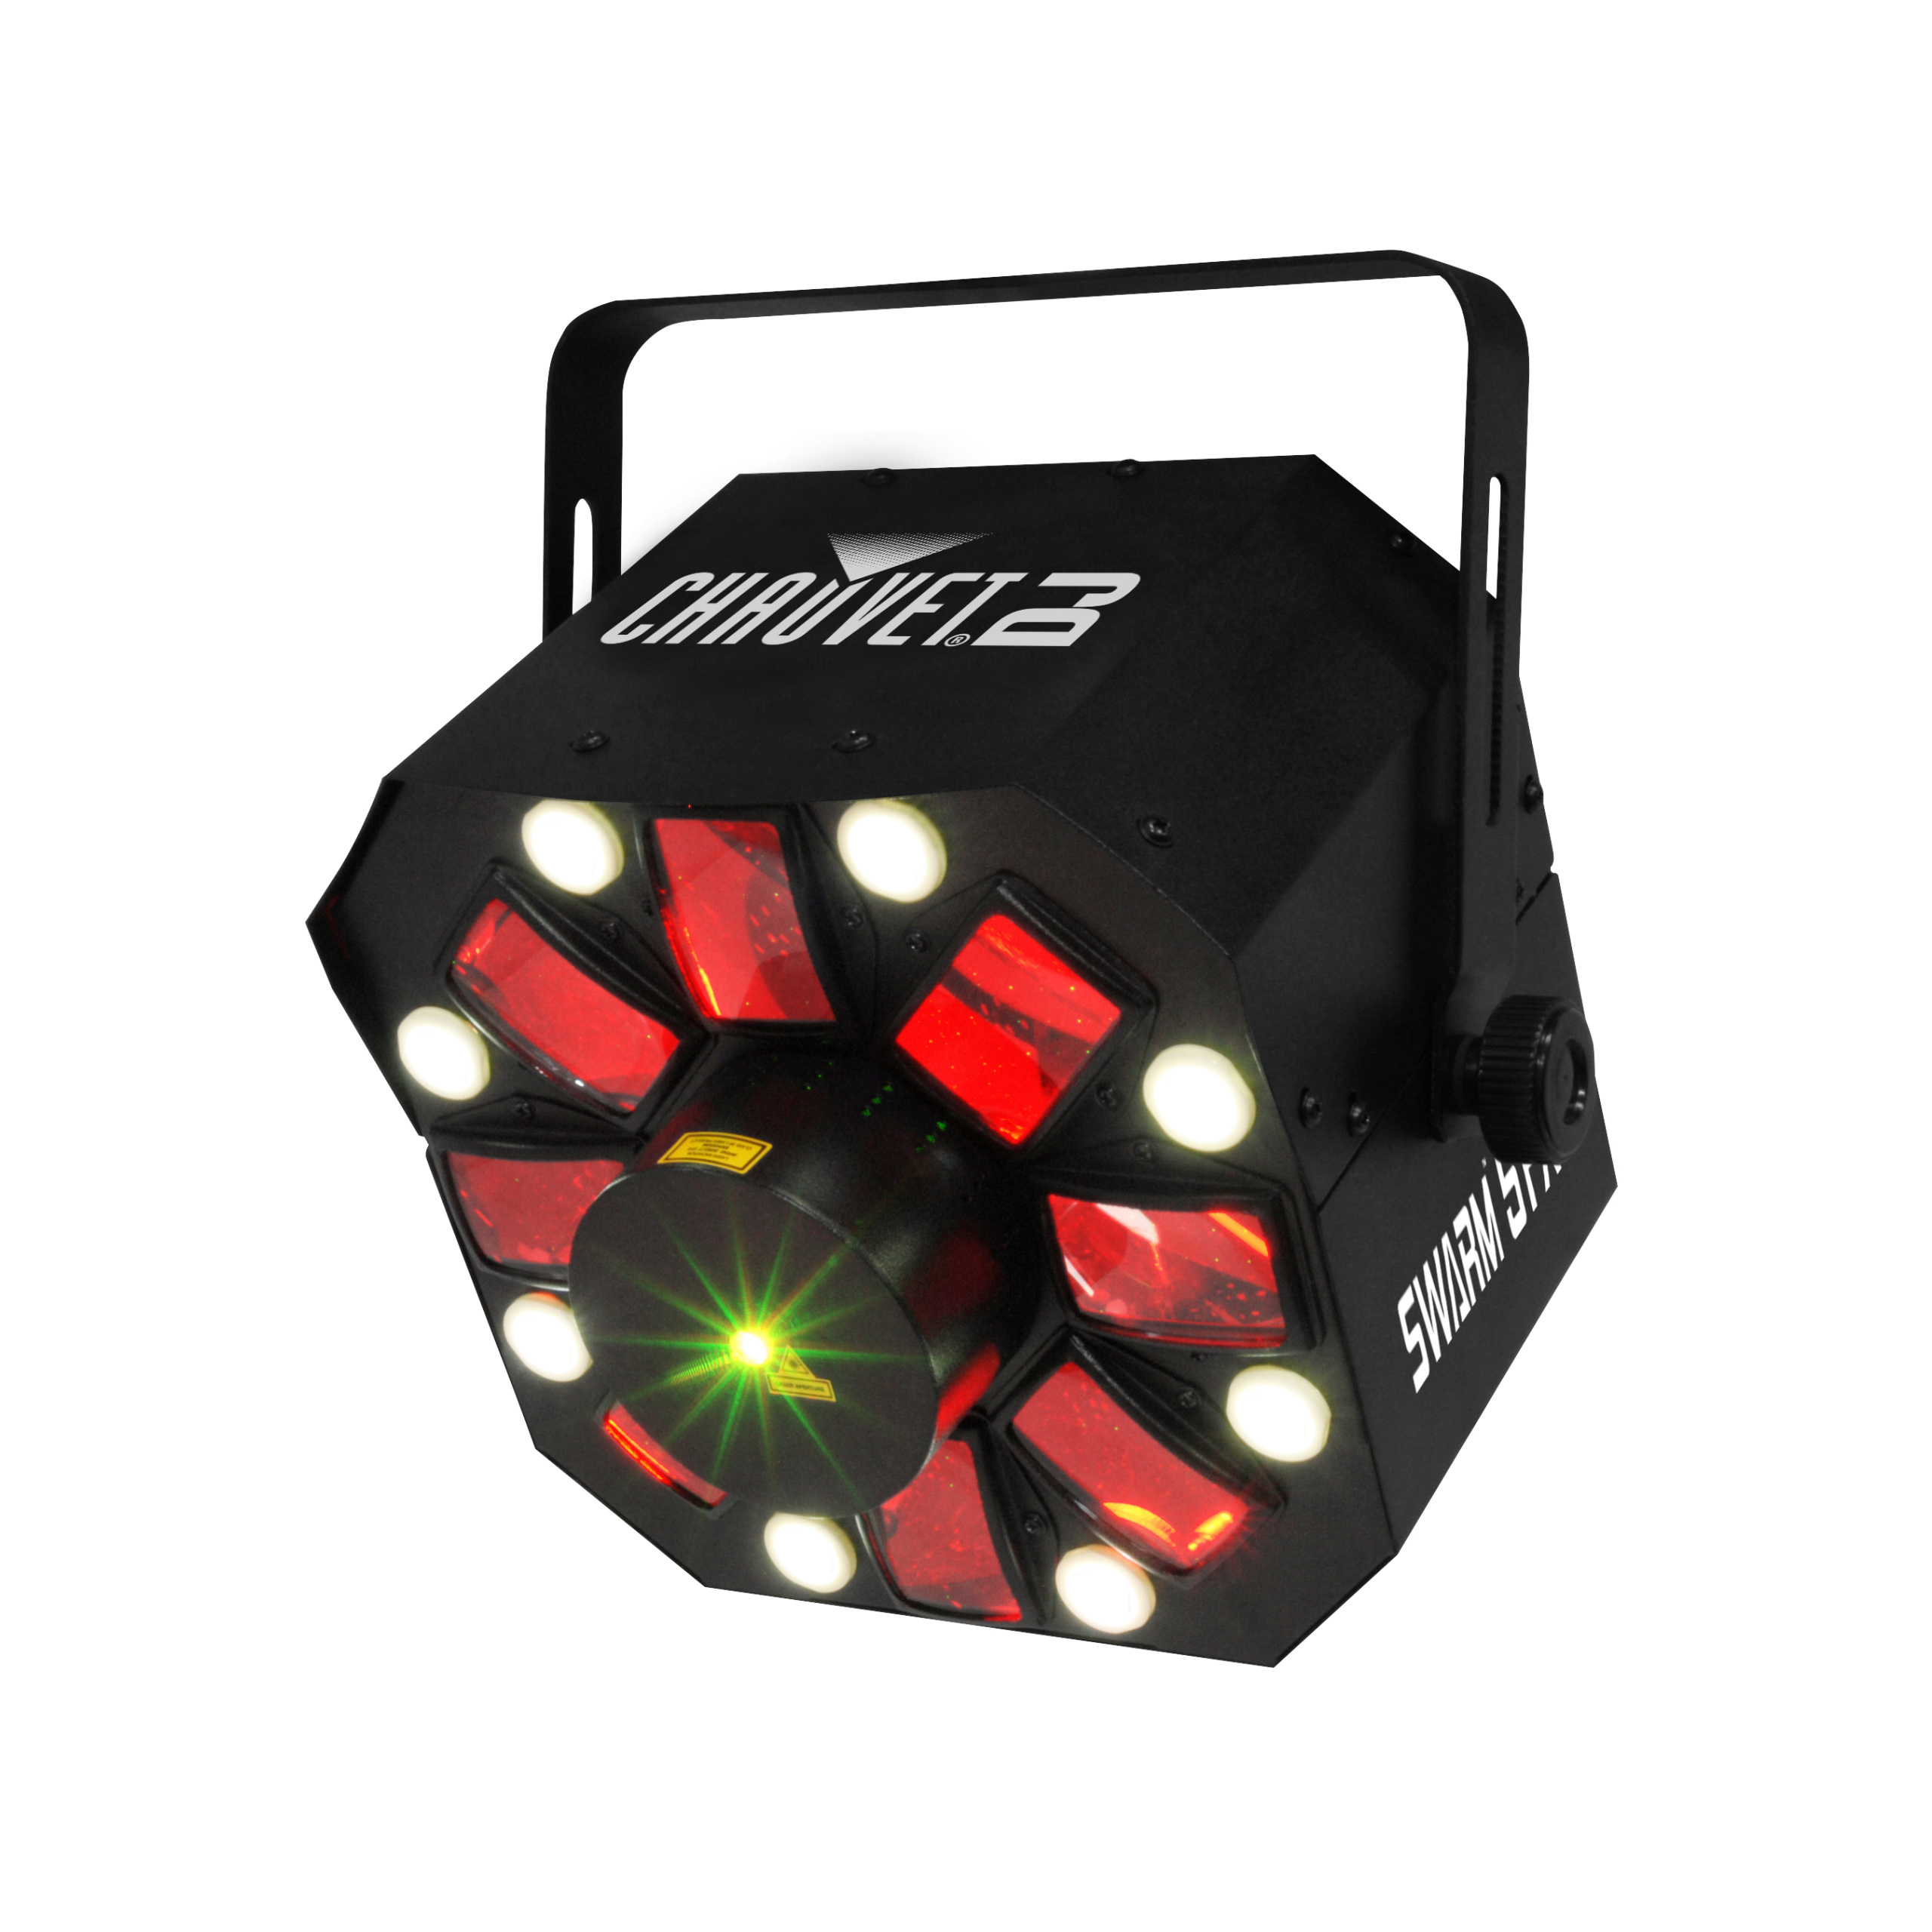 Chauvet DJ Swarm 5 FX 3-in-1 LED light